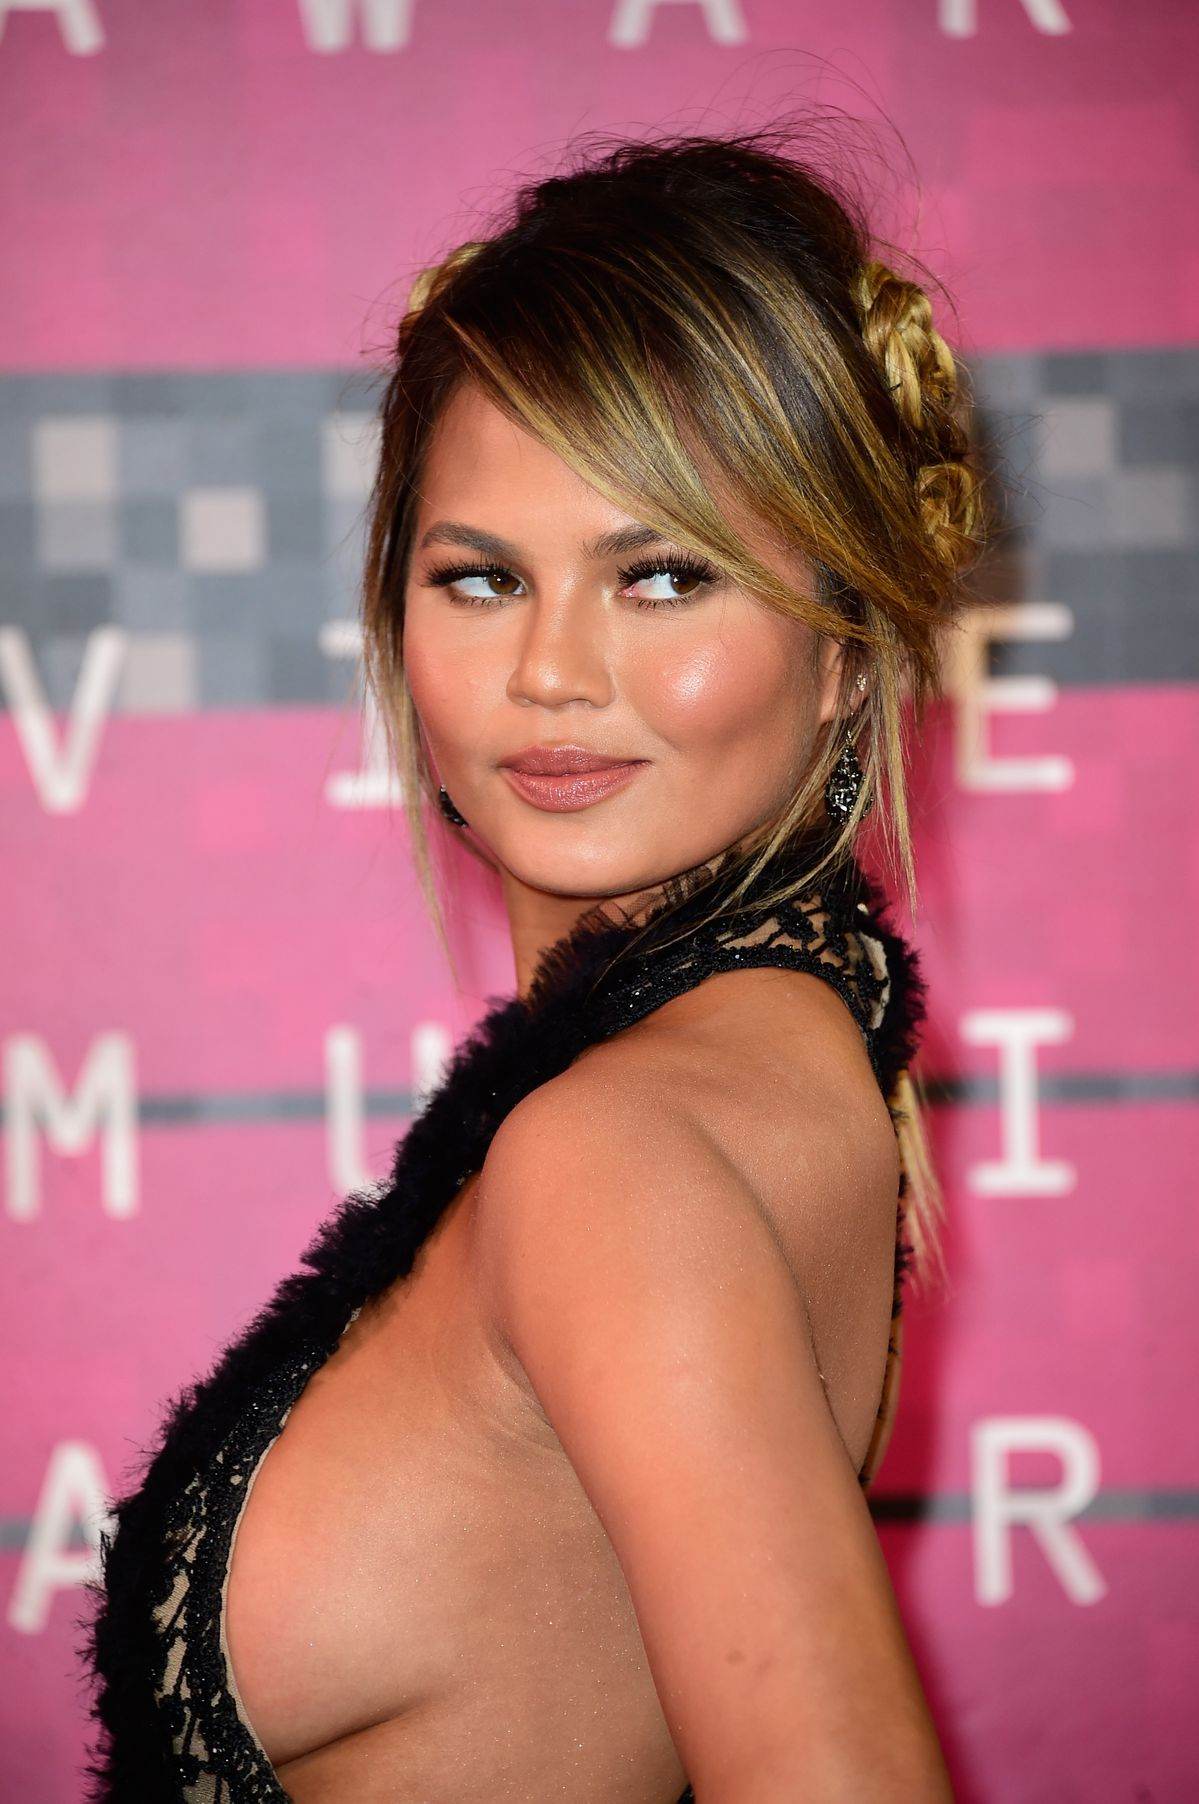 Chrissy Teigen Sexy Photo...